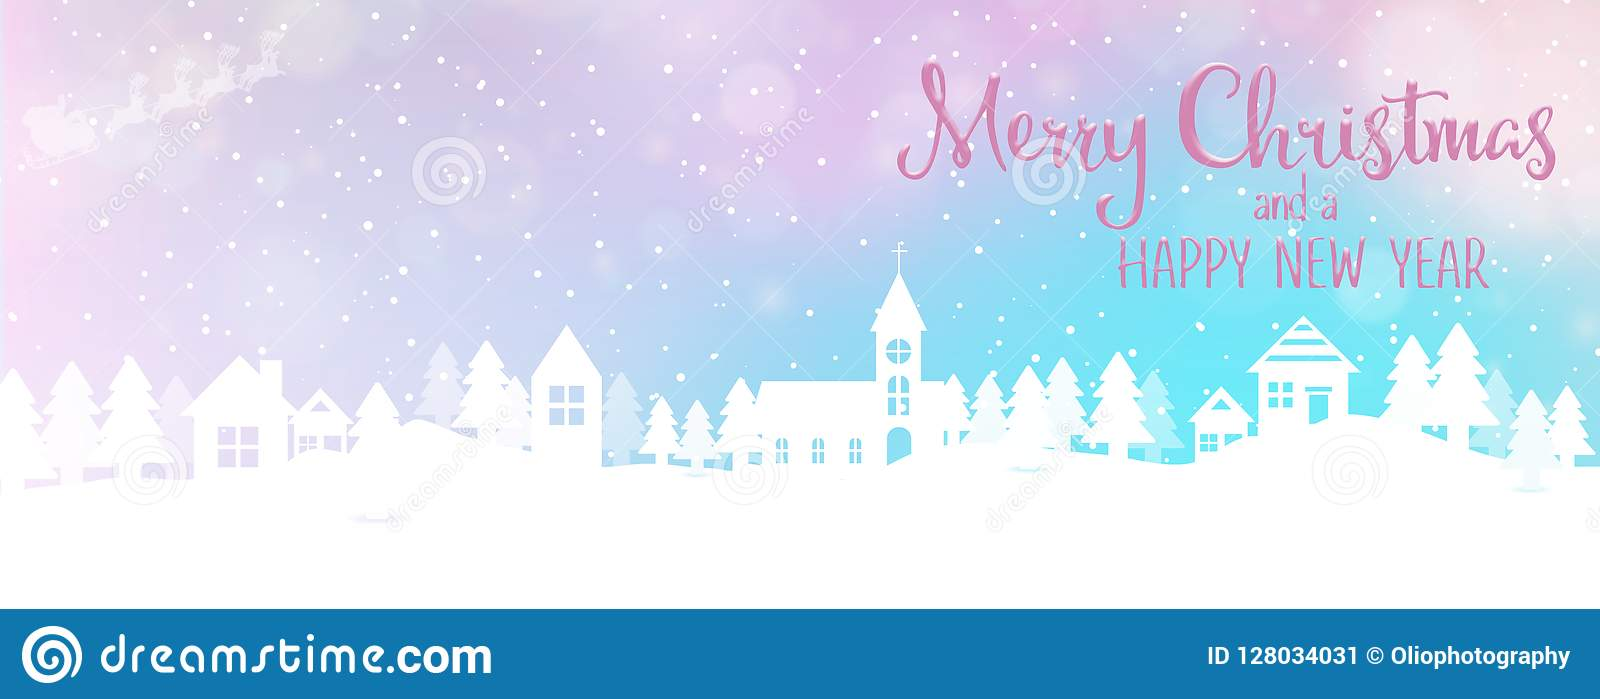 christmas and new year holiday background banner with seasonal quote scales to facebook size perfect for social media influencers and bloggers